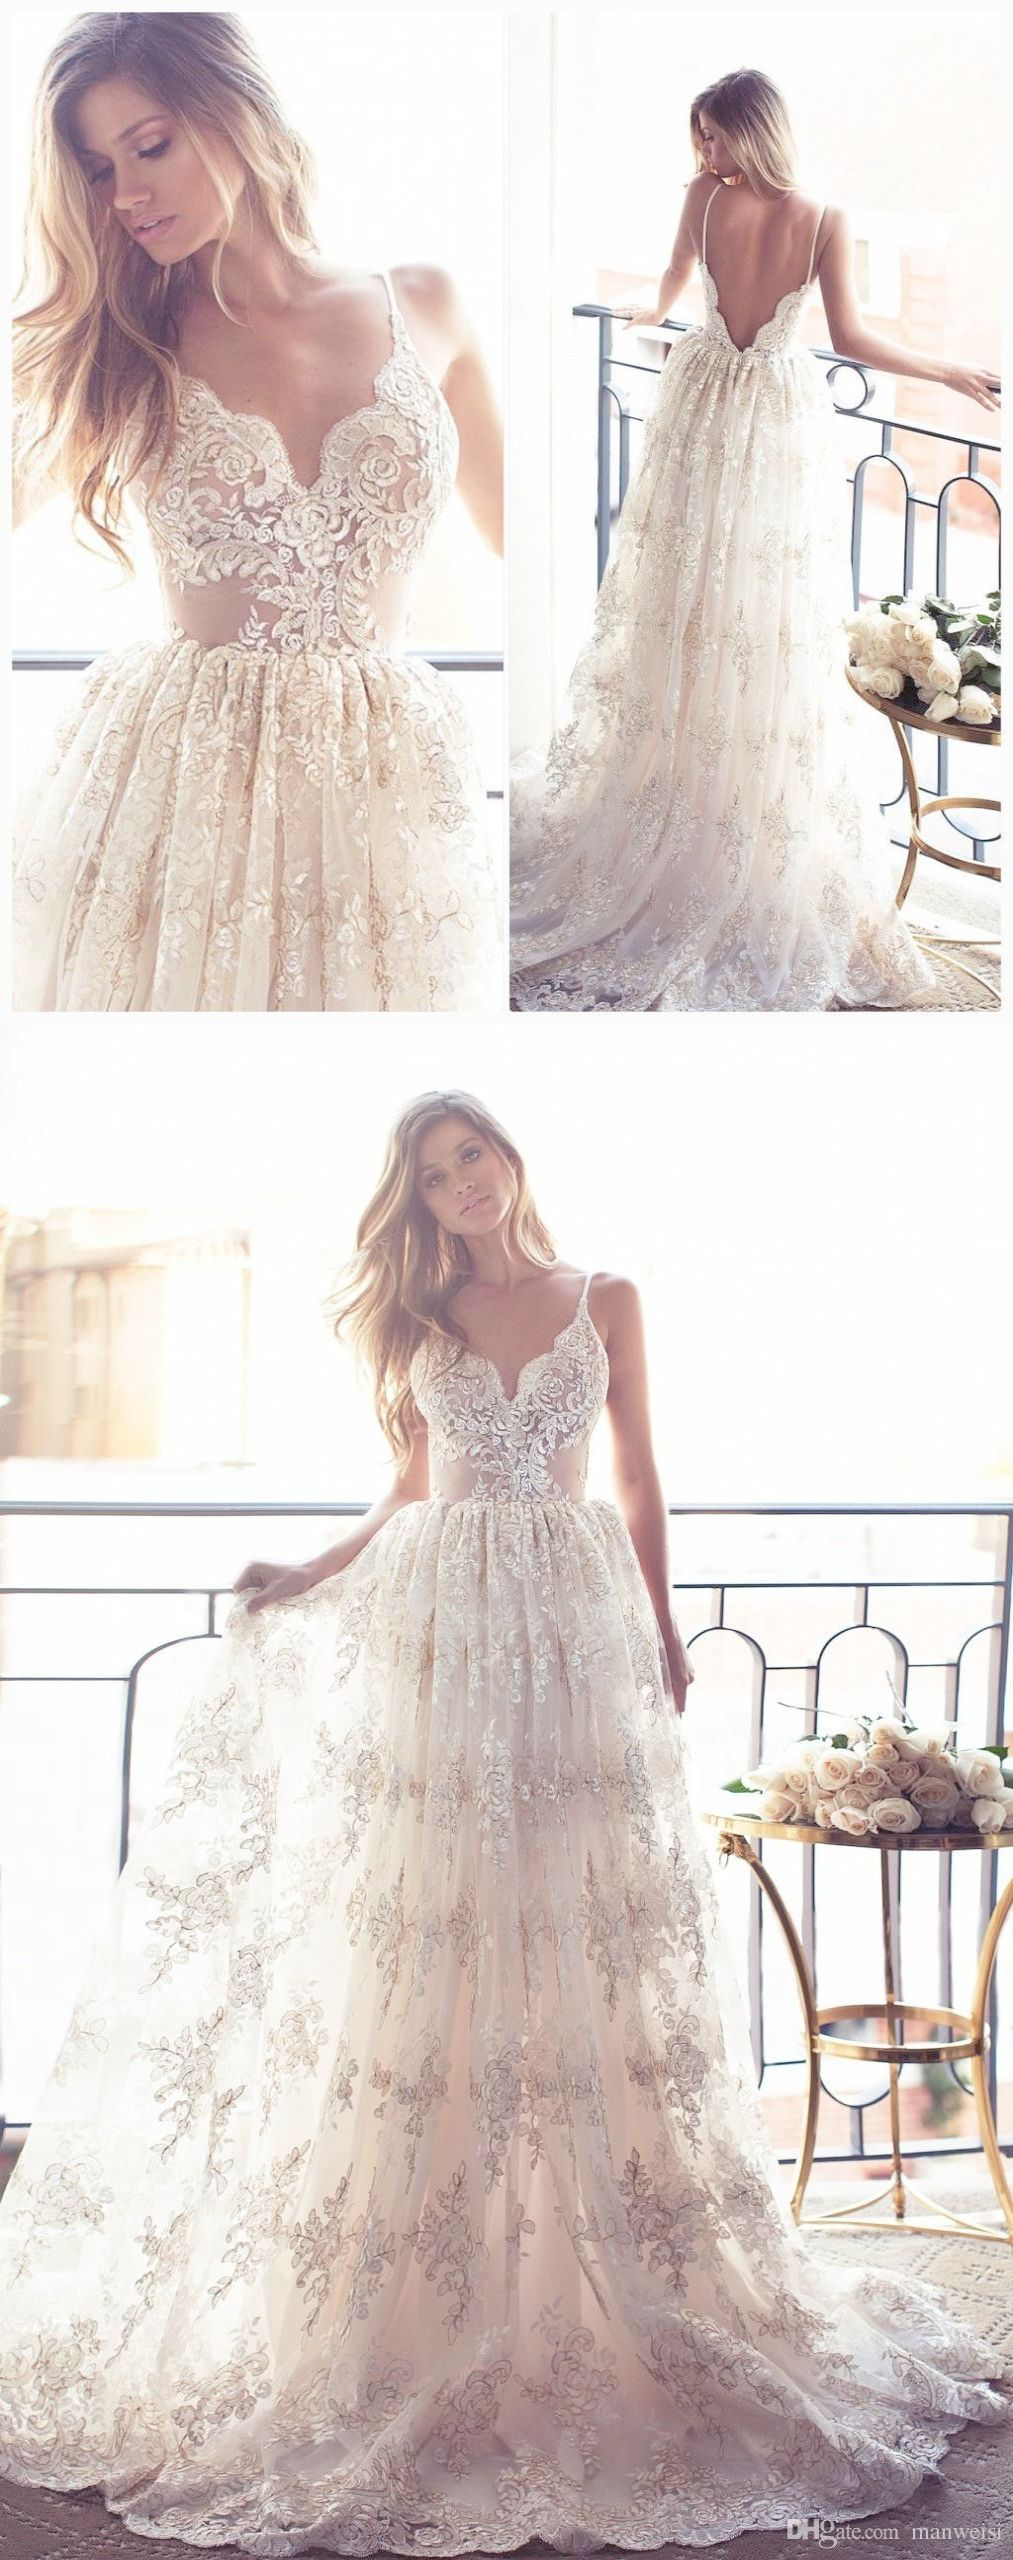 Short lace wedding dresses with cap sleeves all types of wedding